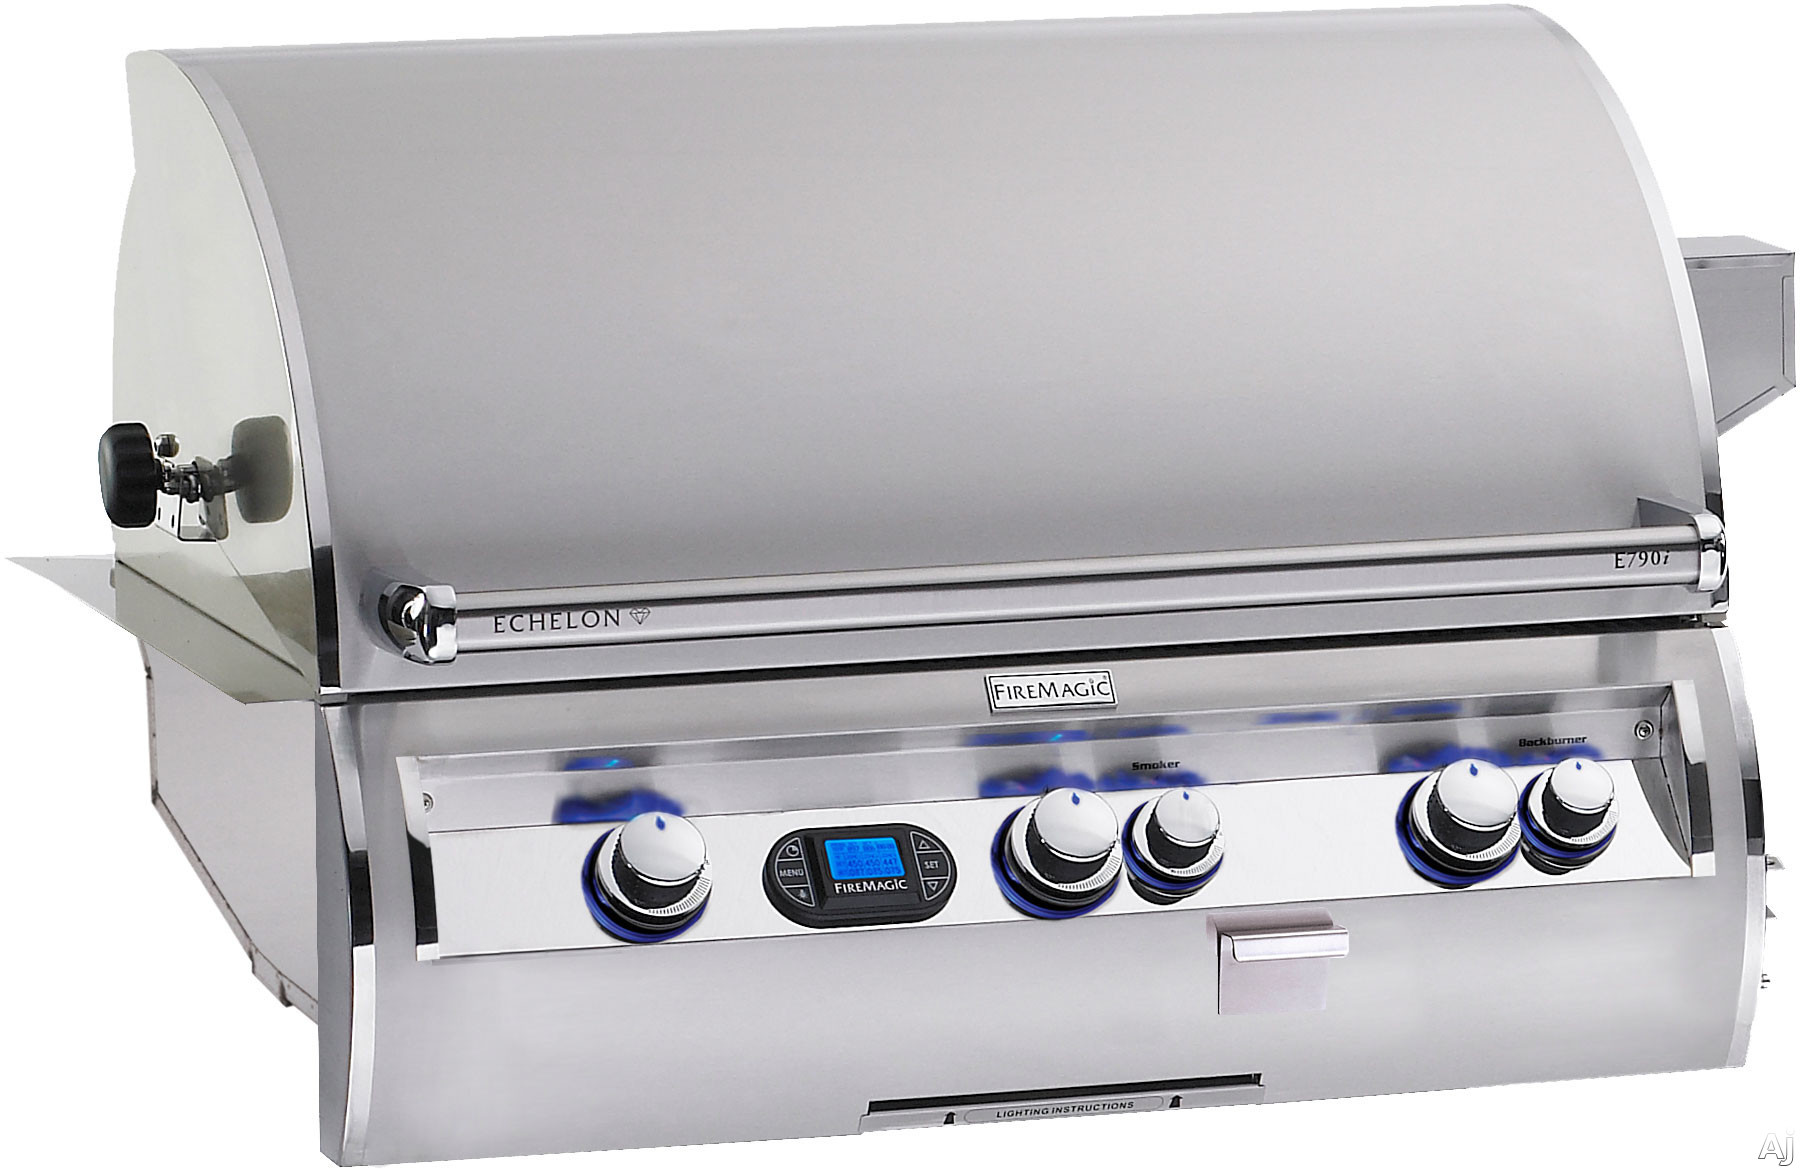 Fire Magic Echelon Collection E790I4LANW 36 Inch Built-in Gas Grill with 792 sq. in. Cooking Surface, 99,000 BTU Primary Burners, 13,000 BTU Back Burner, Charcoal and Smoker Basket: Nat.Gas, 1 Infrare